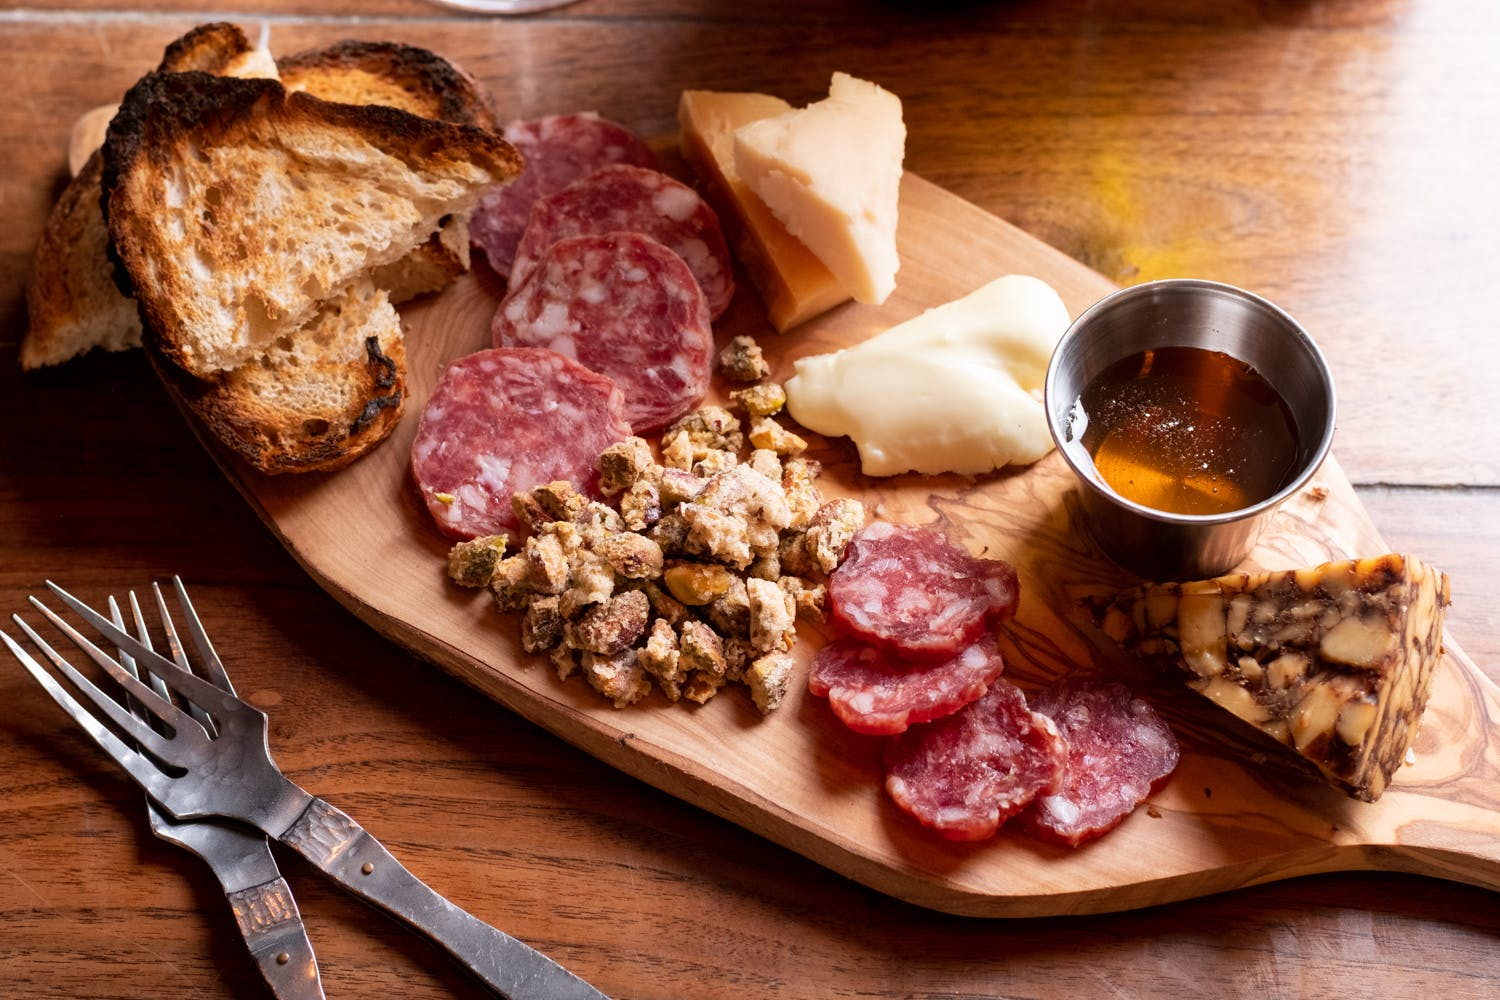 Meat and cheese board.